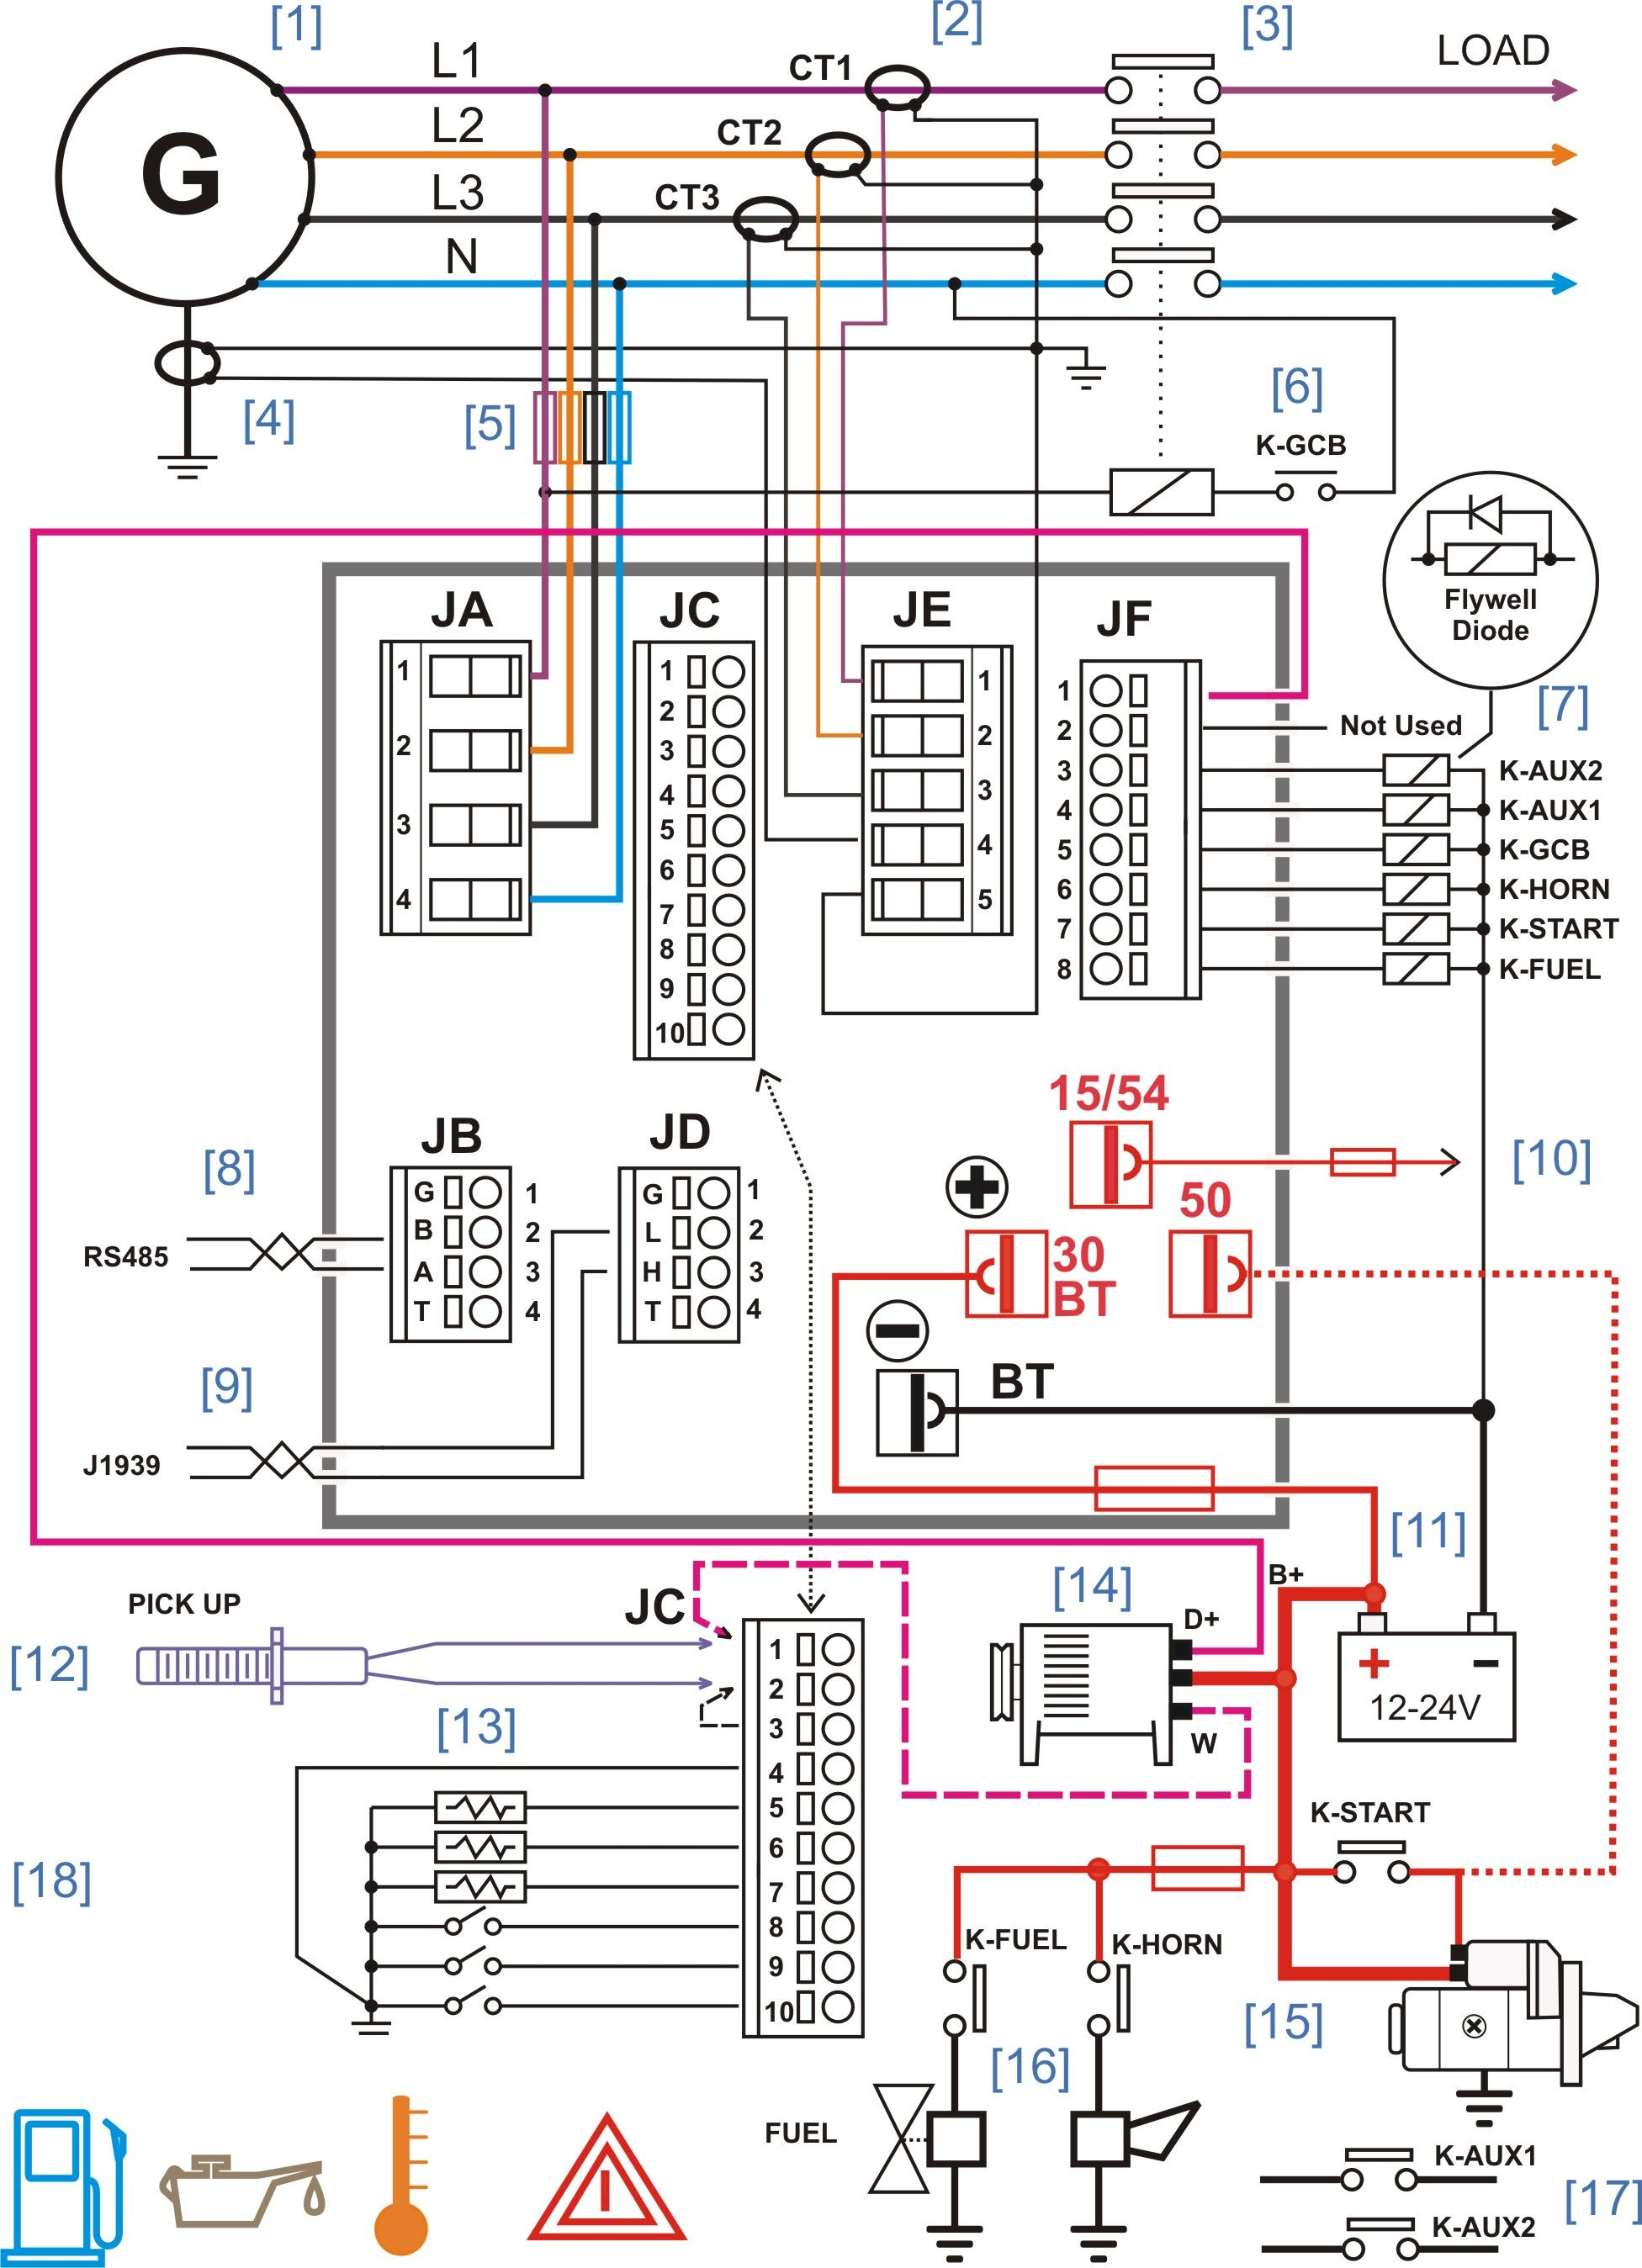 wiring diagram of panel wiring diagram detaileddiesel generator control panel wiring diagram diesel generators in wiring diagram of ats panel diesel generator